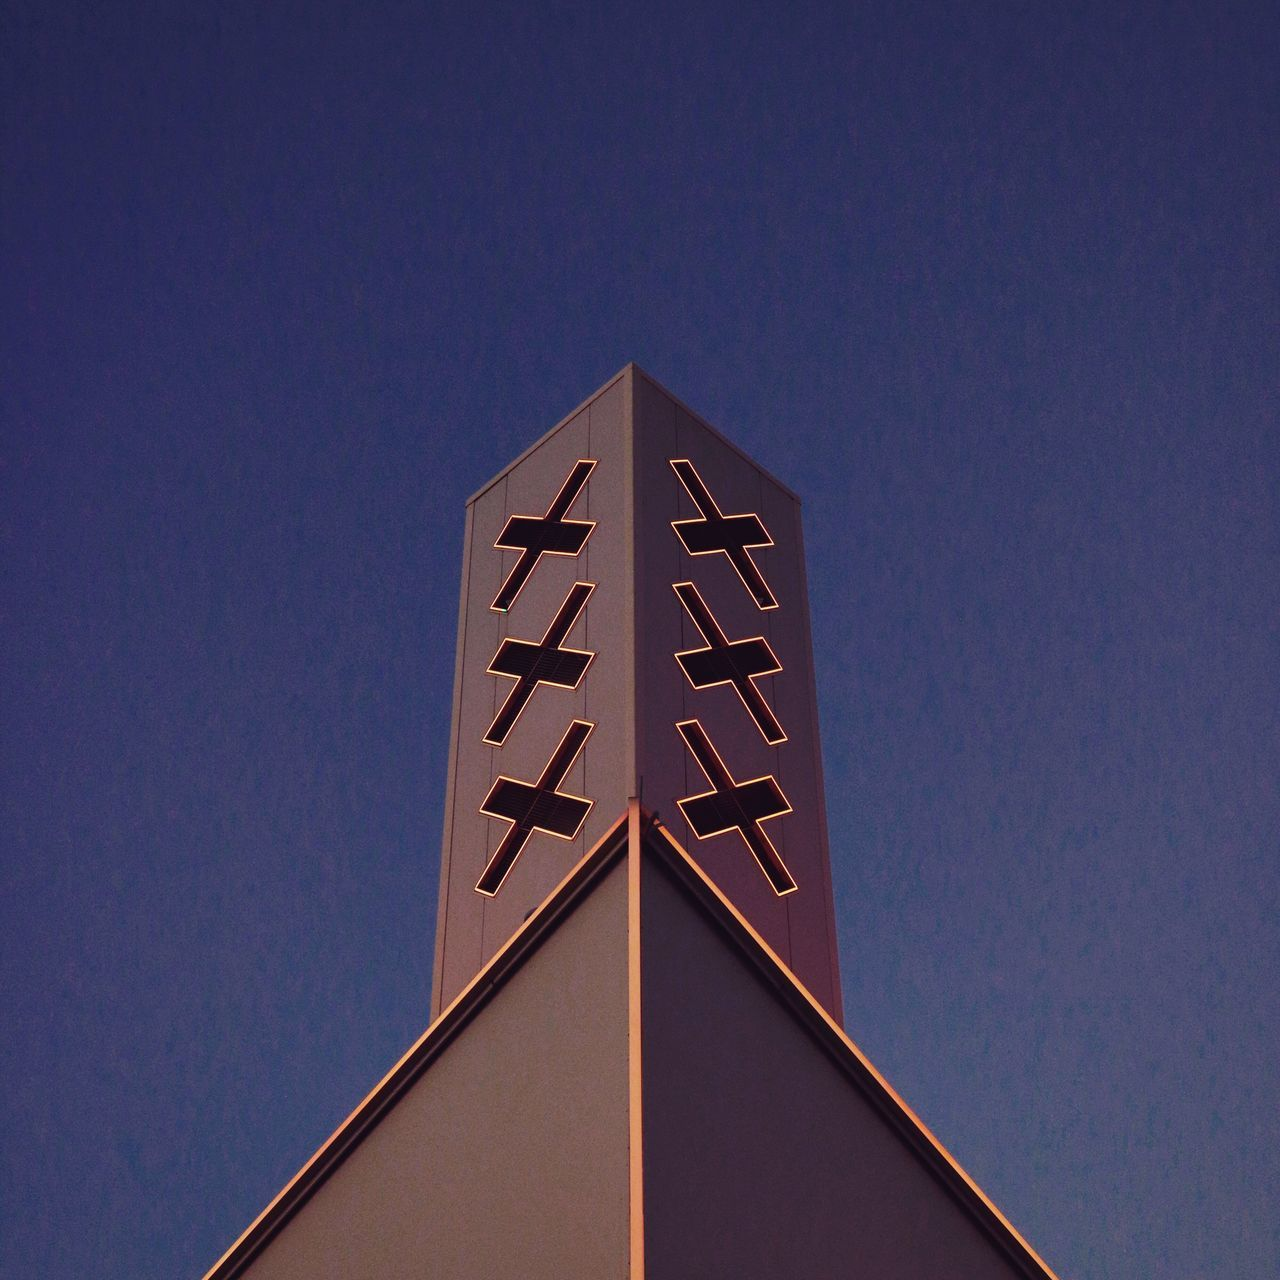 The Architect - 2017 EyeEm Awards top of the A'DAM Lookout. Low Angle View Clear Sky Built Structure Achitecture Architectural Detail No People Outdoors Three Crosses Amsterdam Minimalist Architecture